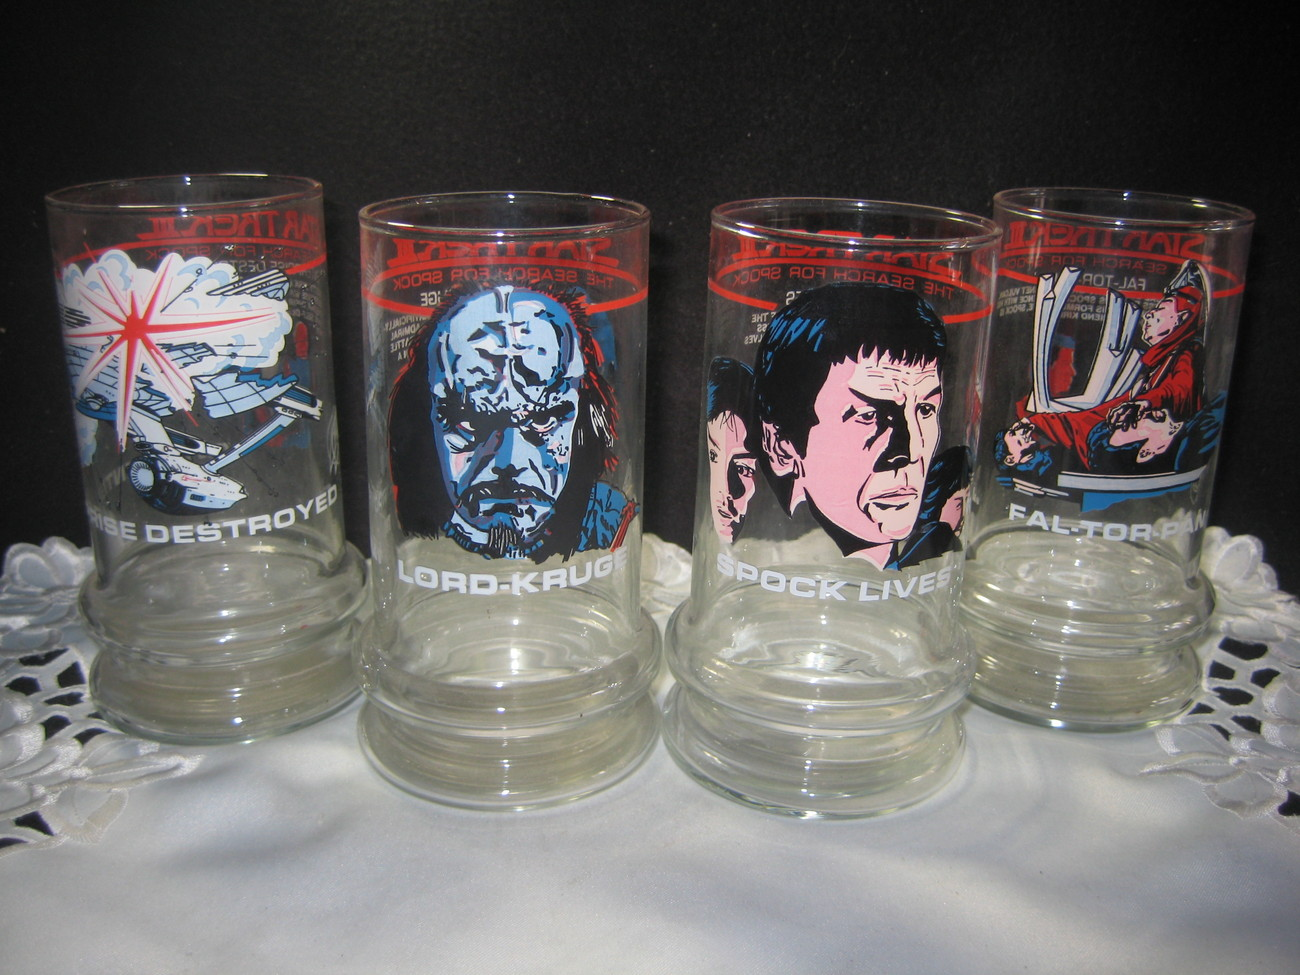 Star Trek Collecor Glasses set of 4